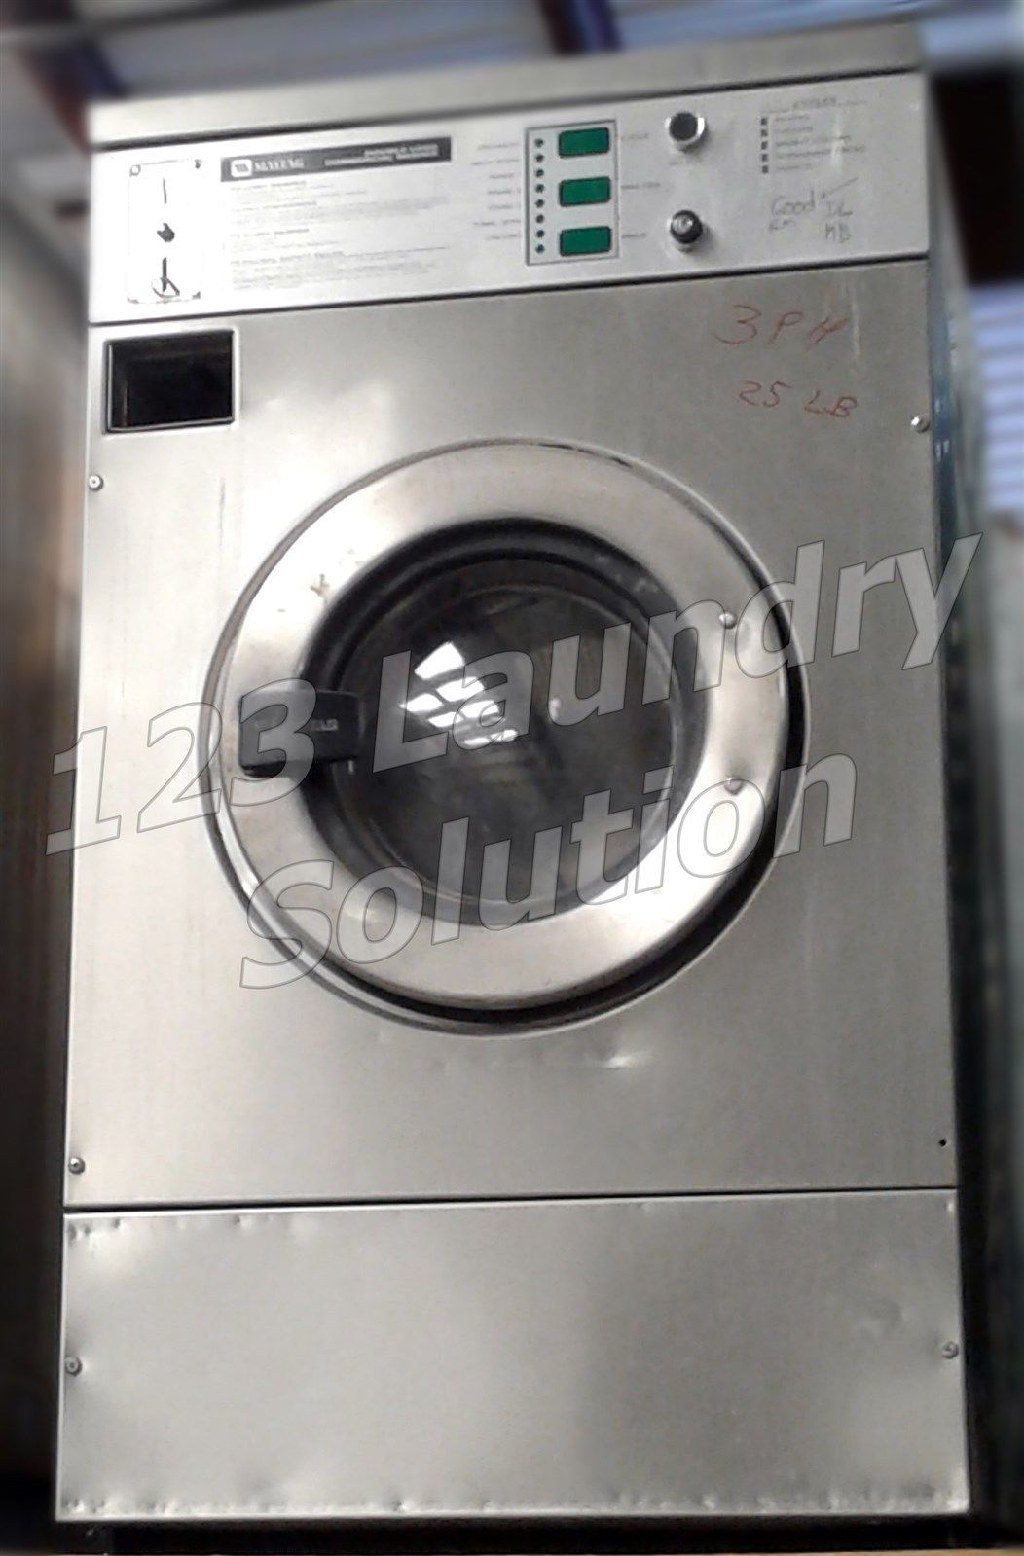 Coin Laundry Maytag Front Load Washer Coin Op 25LB MFR25PCAVS 3PH Stainless Steel Used